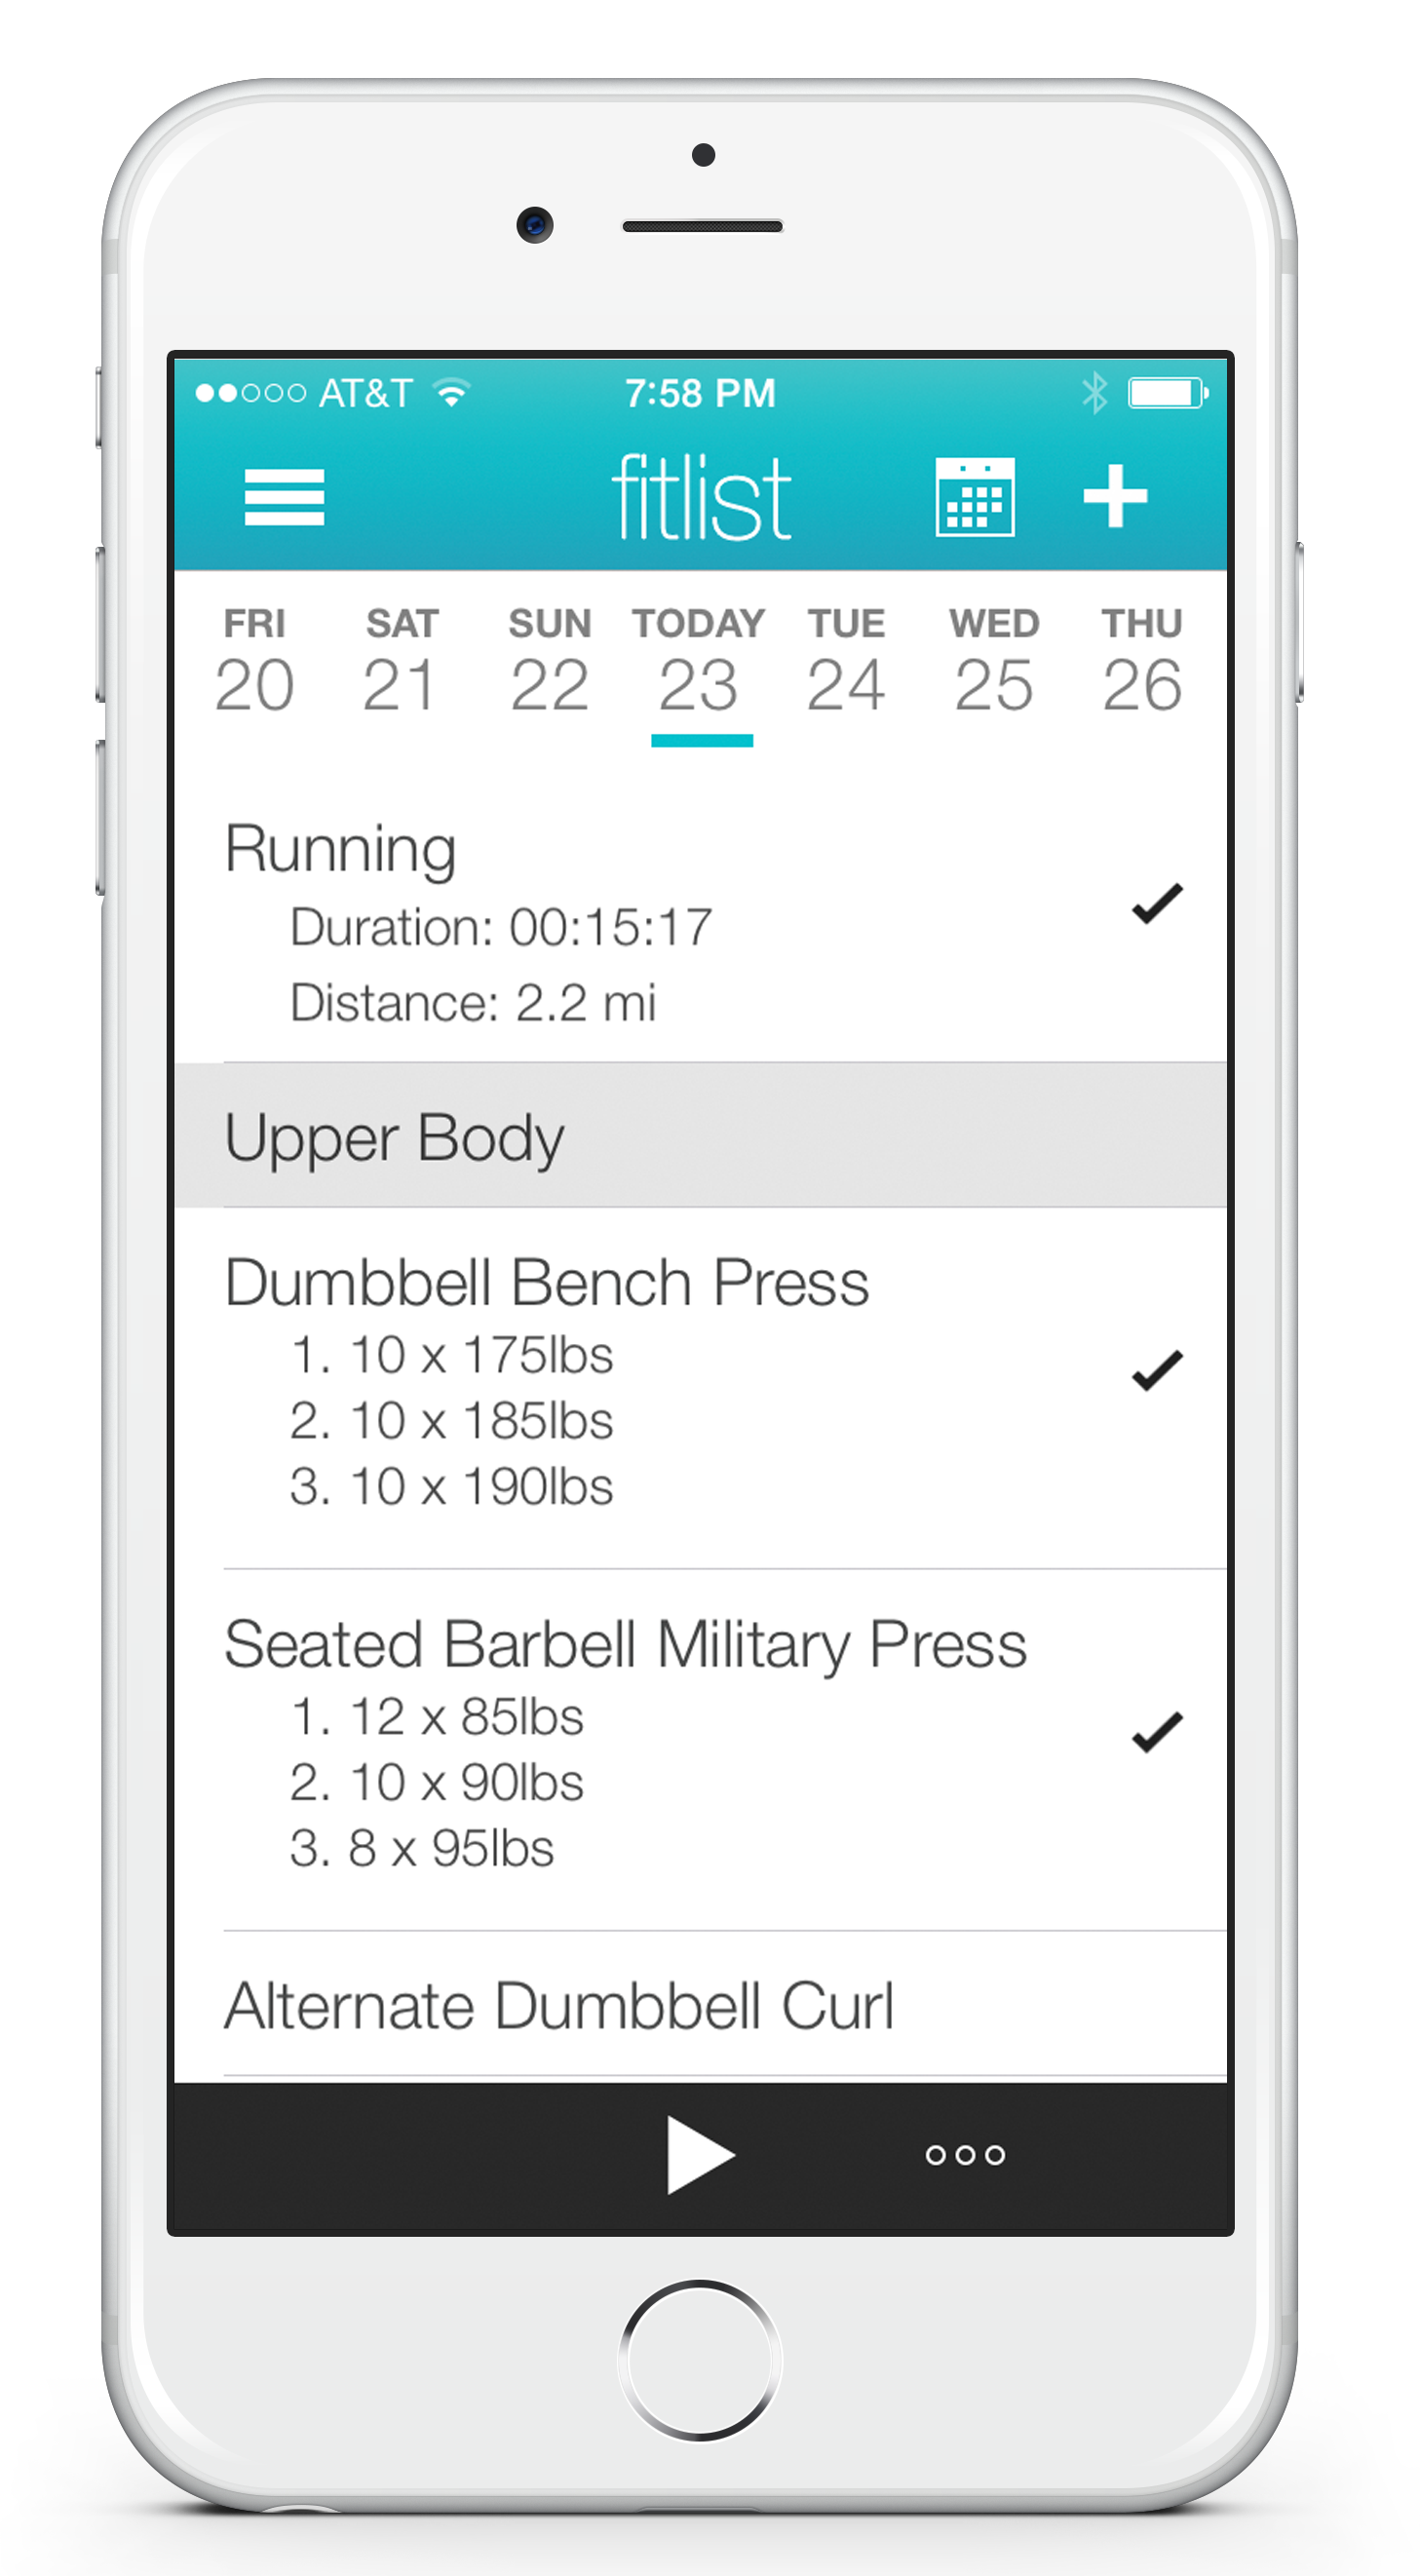 fitlist workout log app fitness tracker exercise journal with